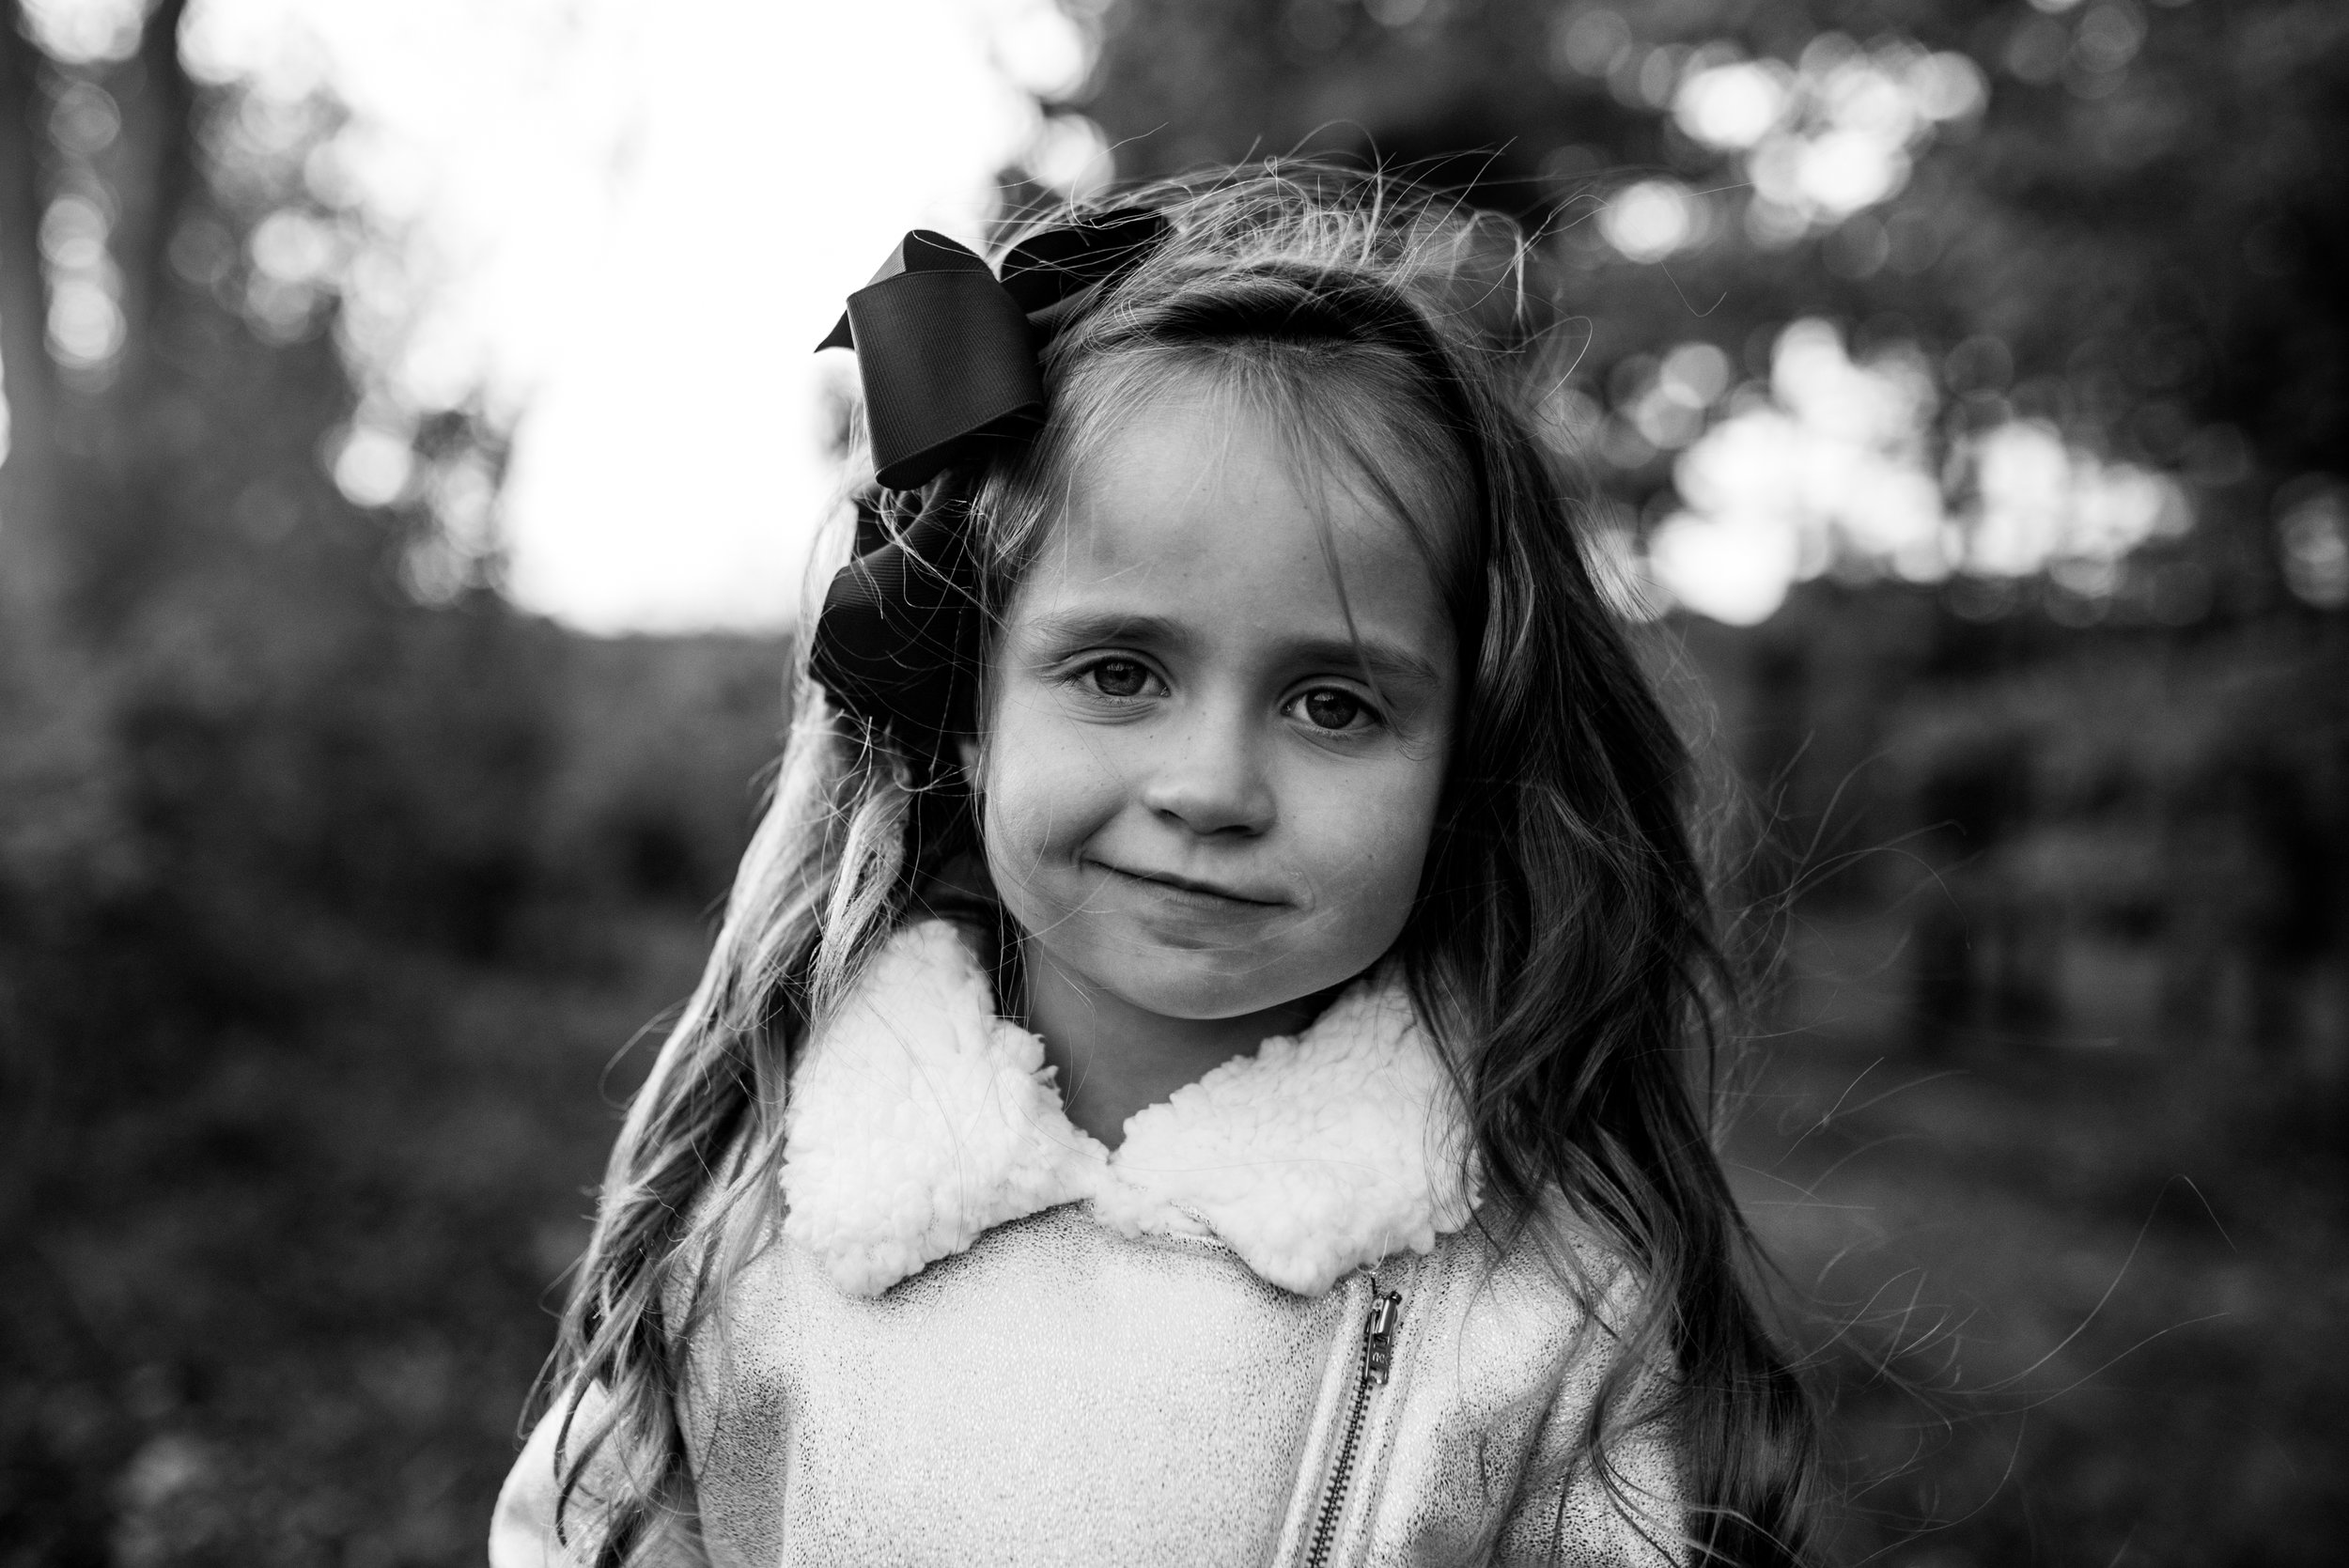 Young girl looking at the camera with a smirk